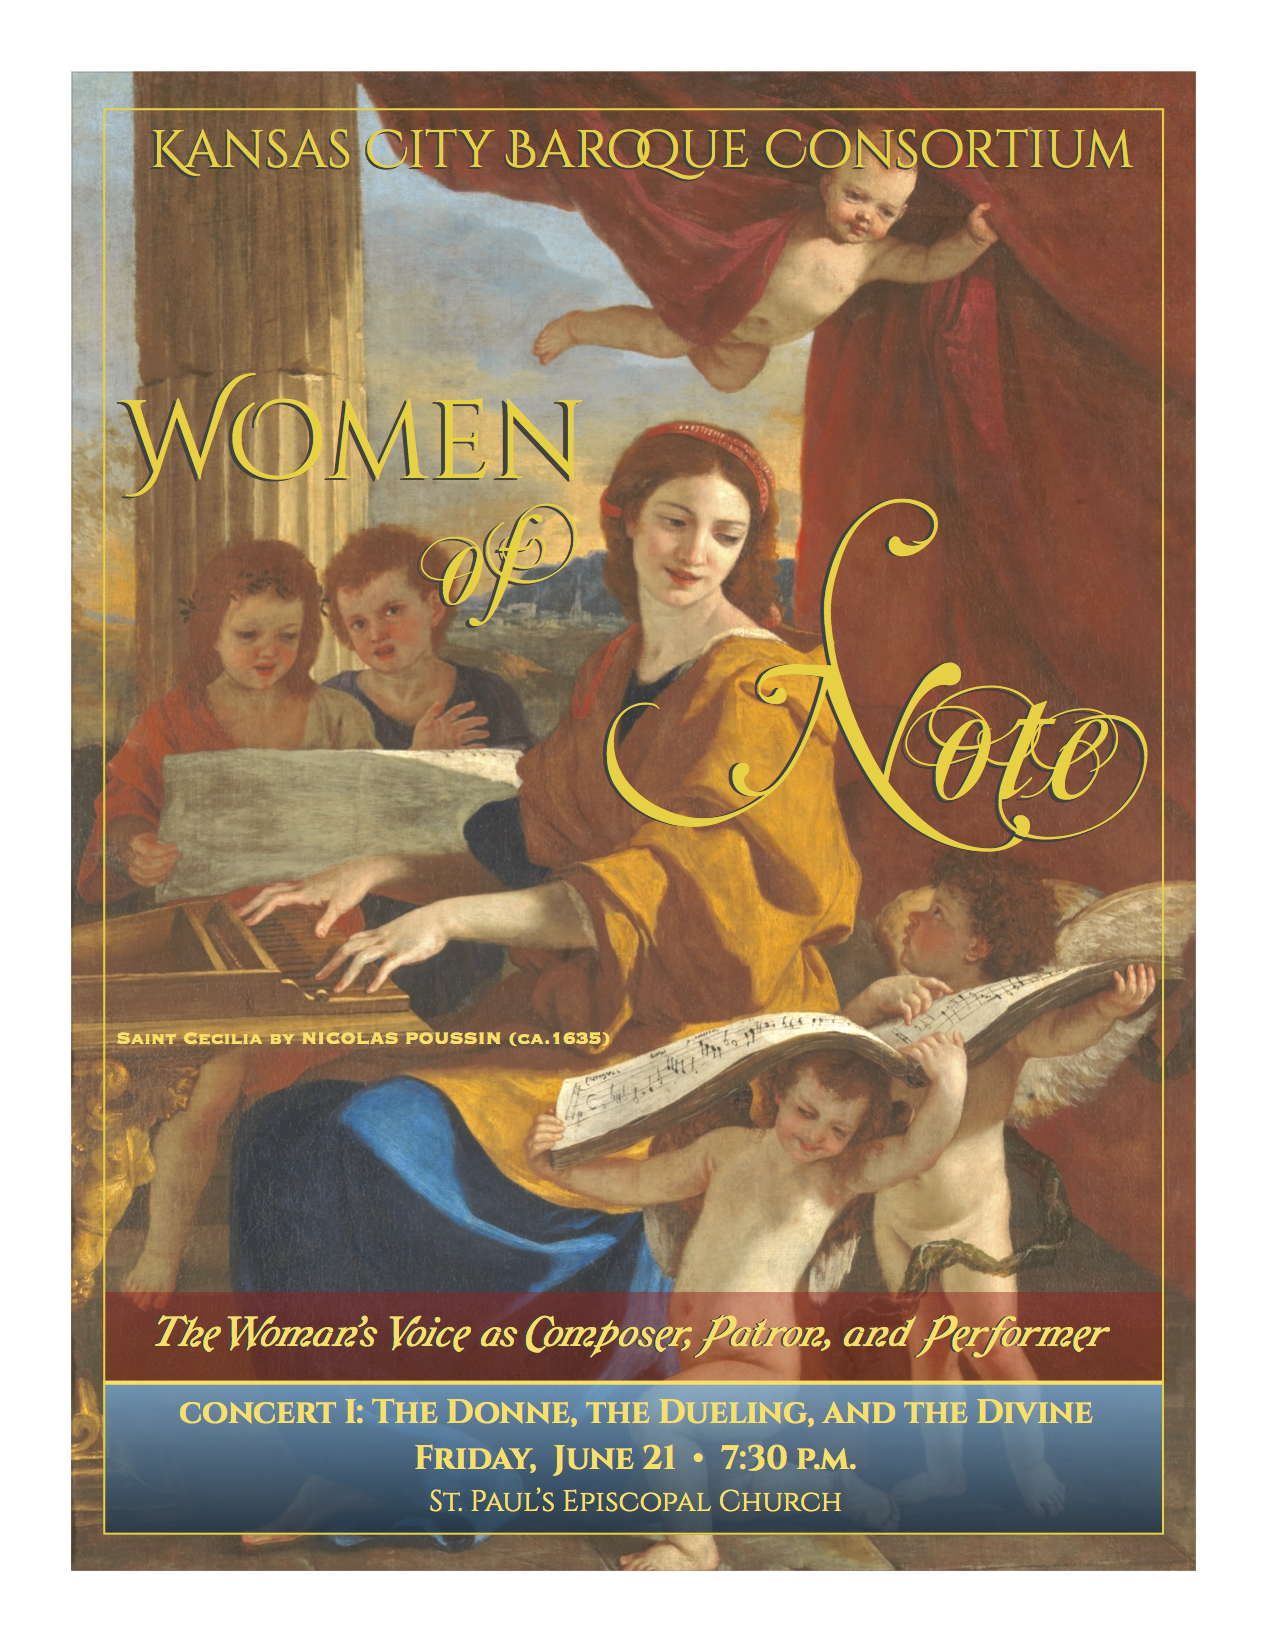 Concert I: The Donne, the Dueling and the Divine - View the Printed Program